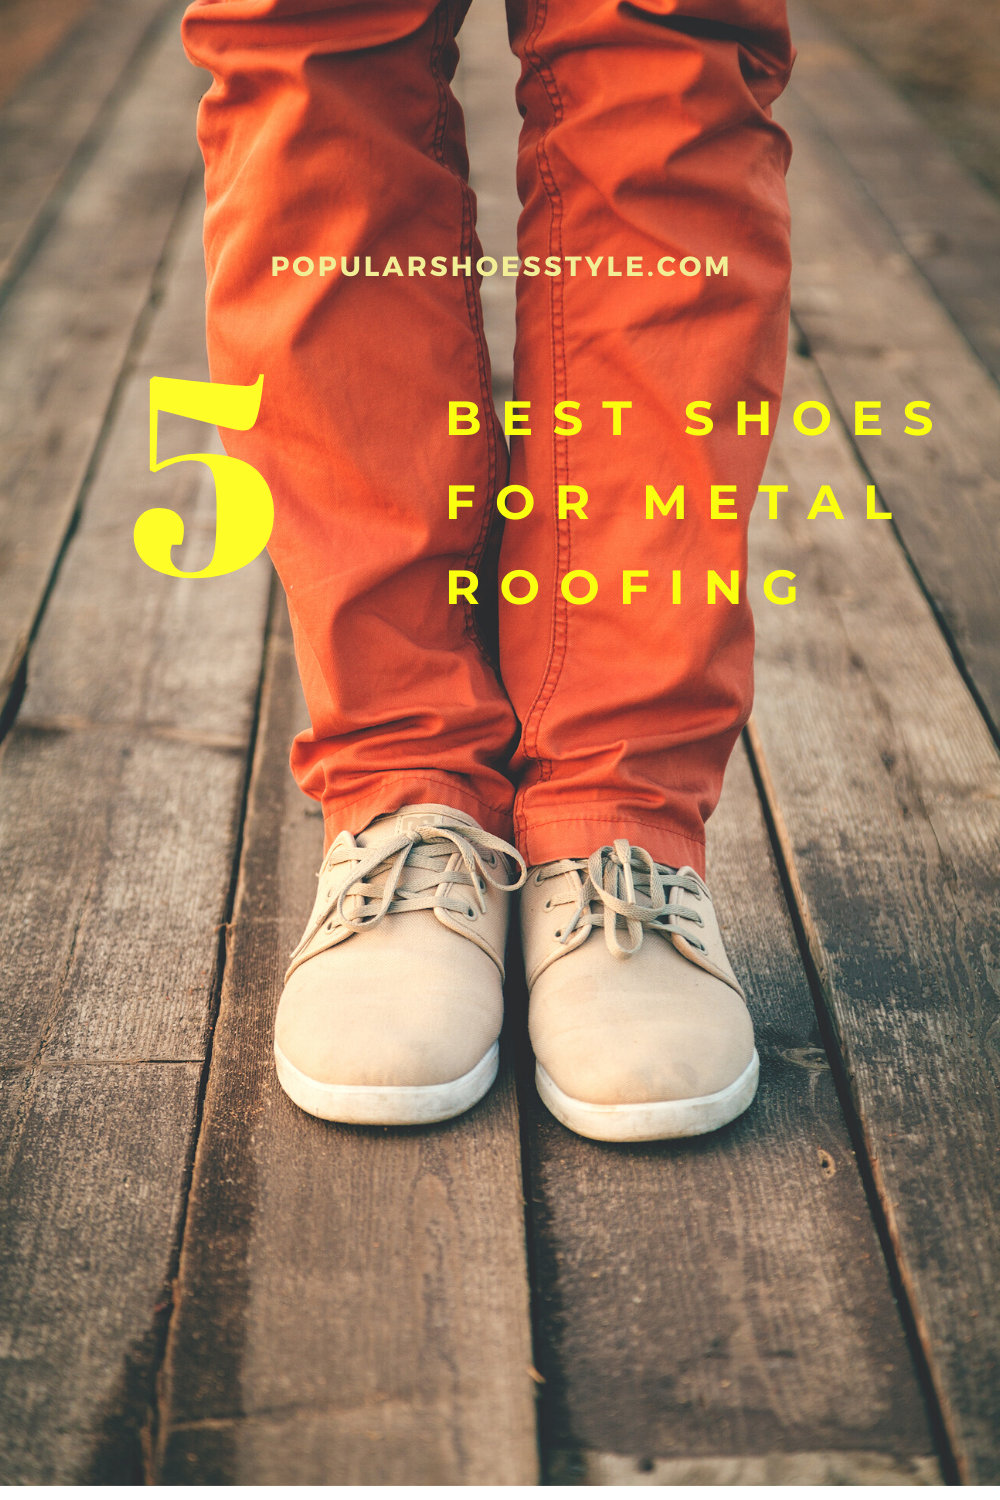 5 Best Shoes For Metal Roofing In 2020 Nice Shoes Shoes Style Guide Most Popular Shoes